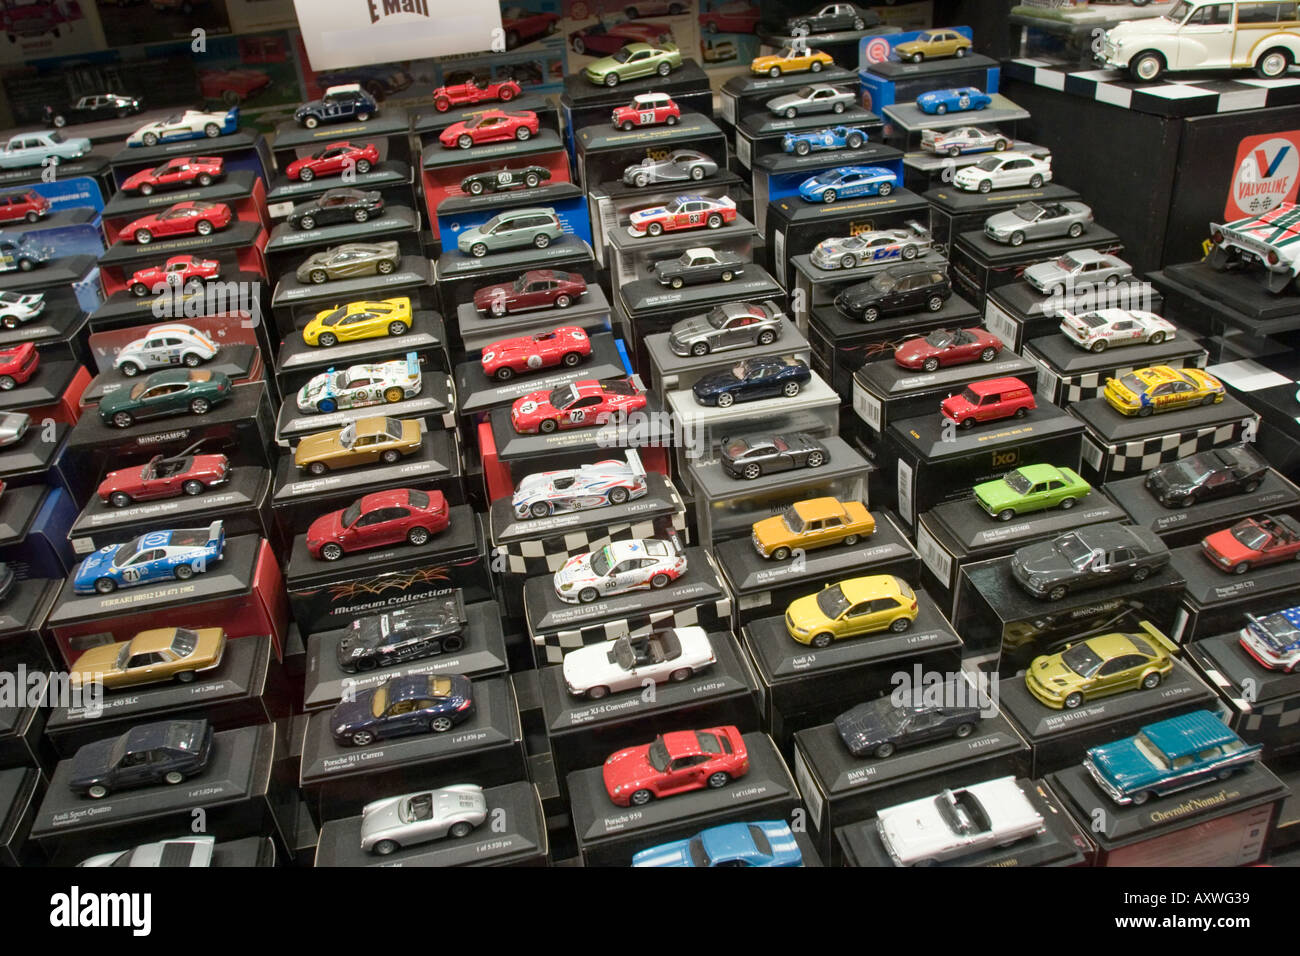 Die Cast Toy Cars In Window Display Of Toy Shop Stock Photo 5524536